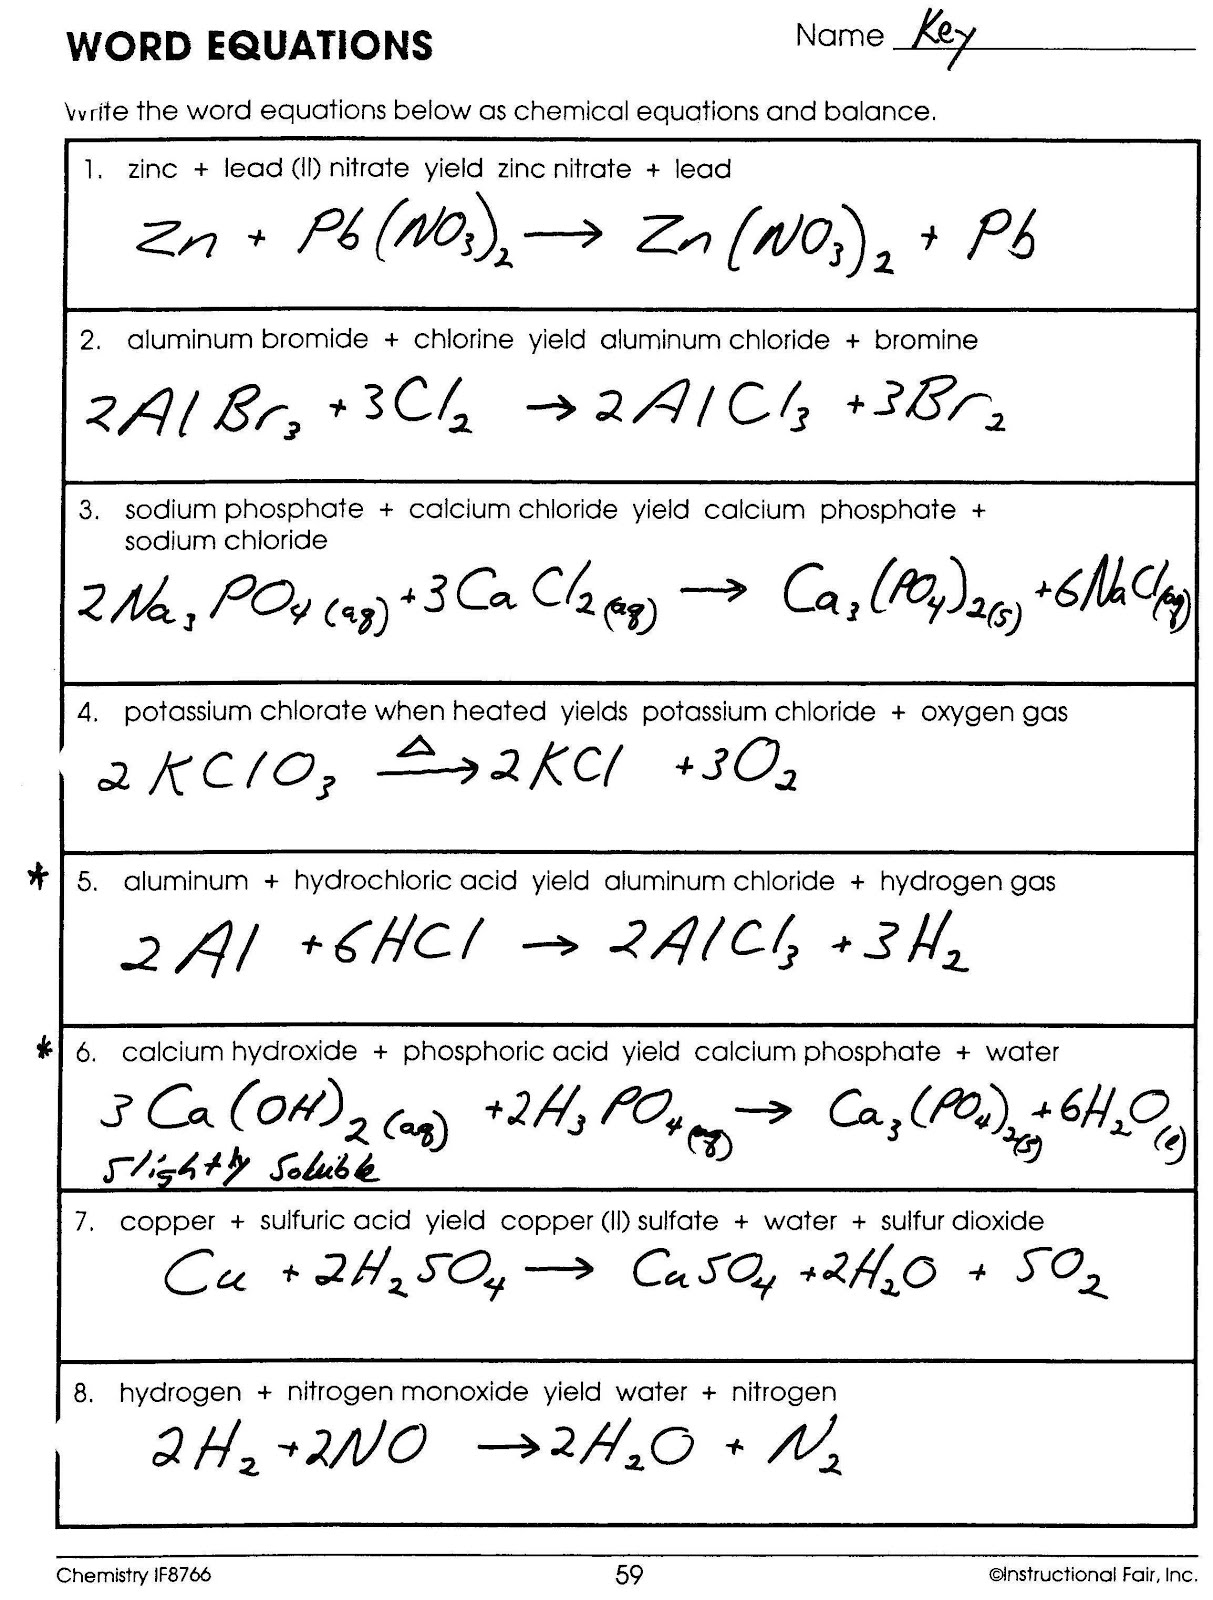 Worksheet Chemistry Worksheet balancing chemical equations worksheet grade 11 with answers word worksheets